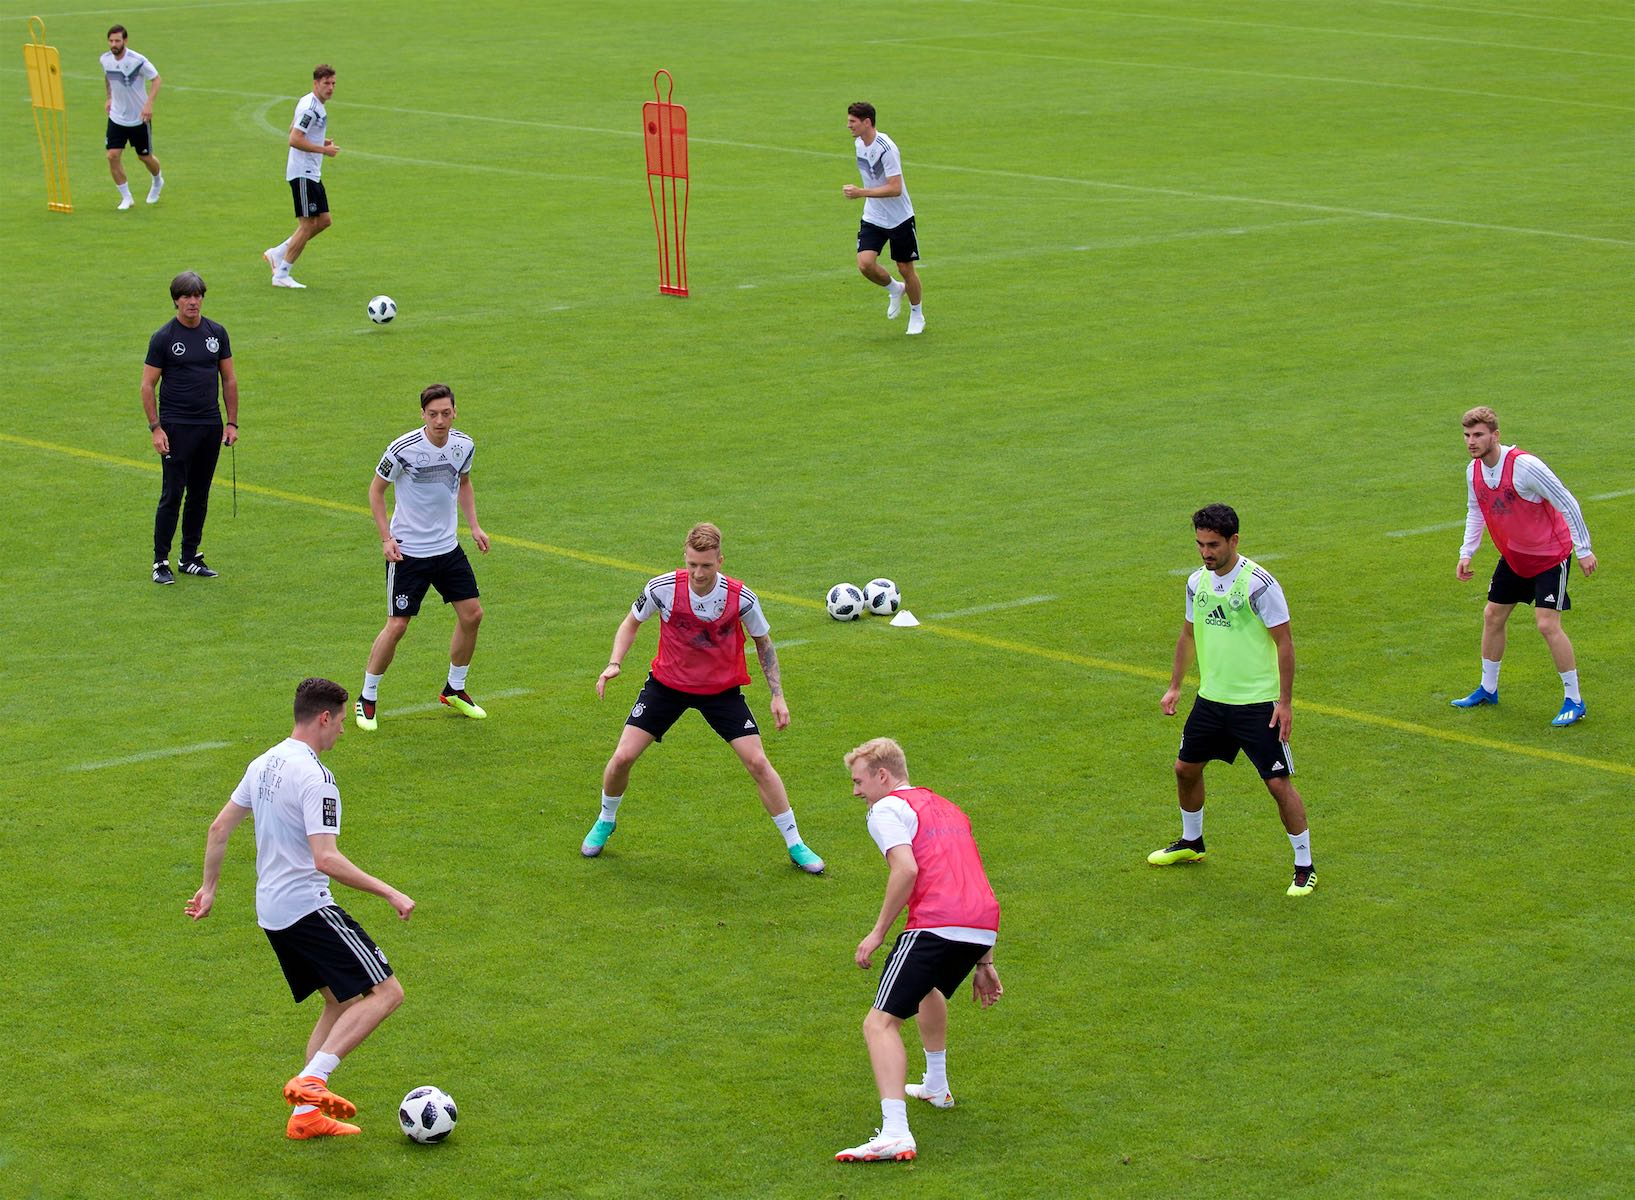 German National Team training at the Rungg Training Center for the 2018 World Cup in Russia.